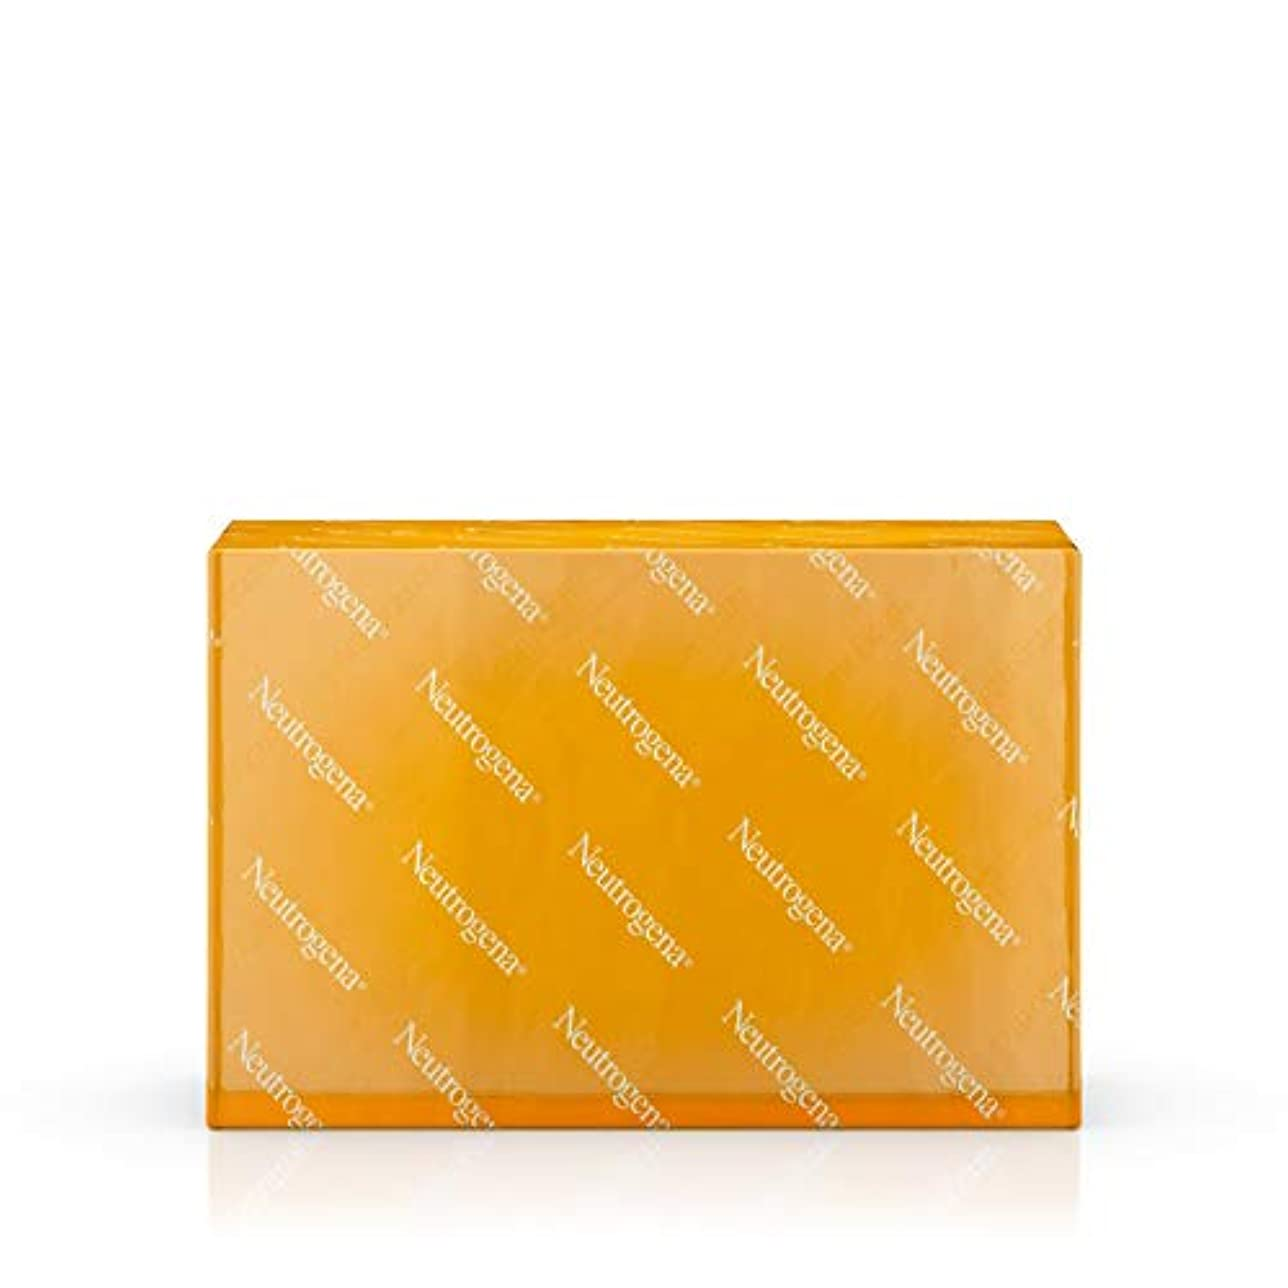 チーズスープ仮定する海外直送品 Neutrogena Neutrogena Transparent Facial Bar Soap Fragrance Free, Fragrance Free 3.5 oz